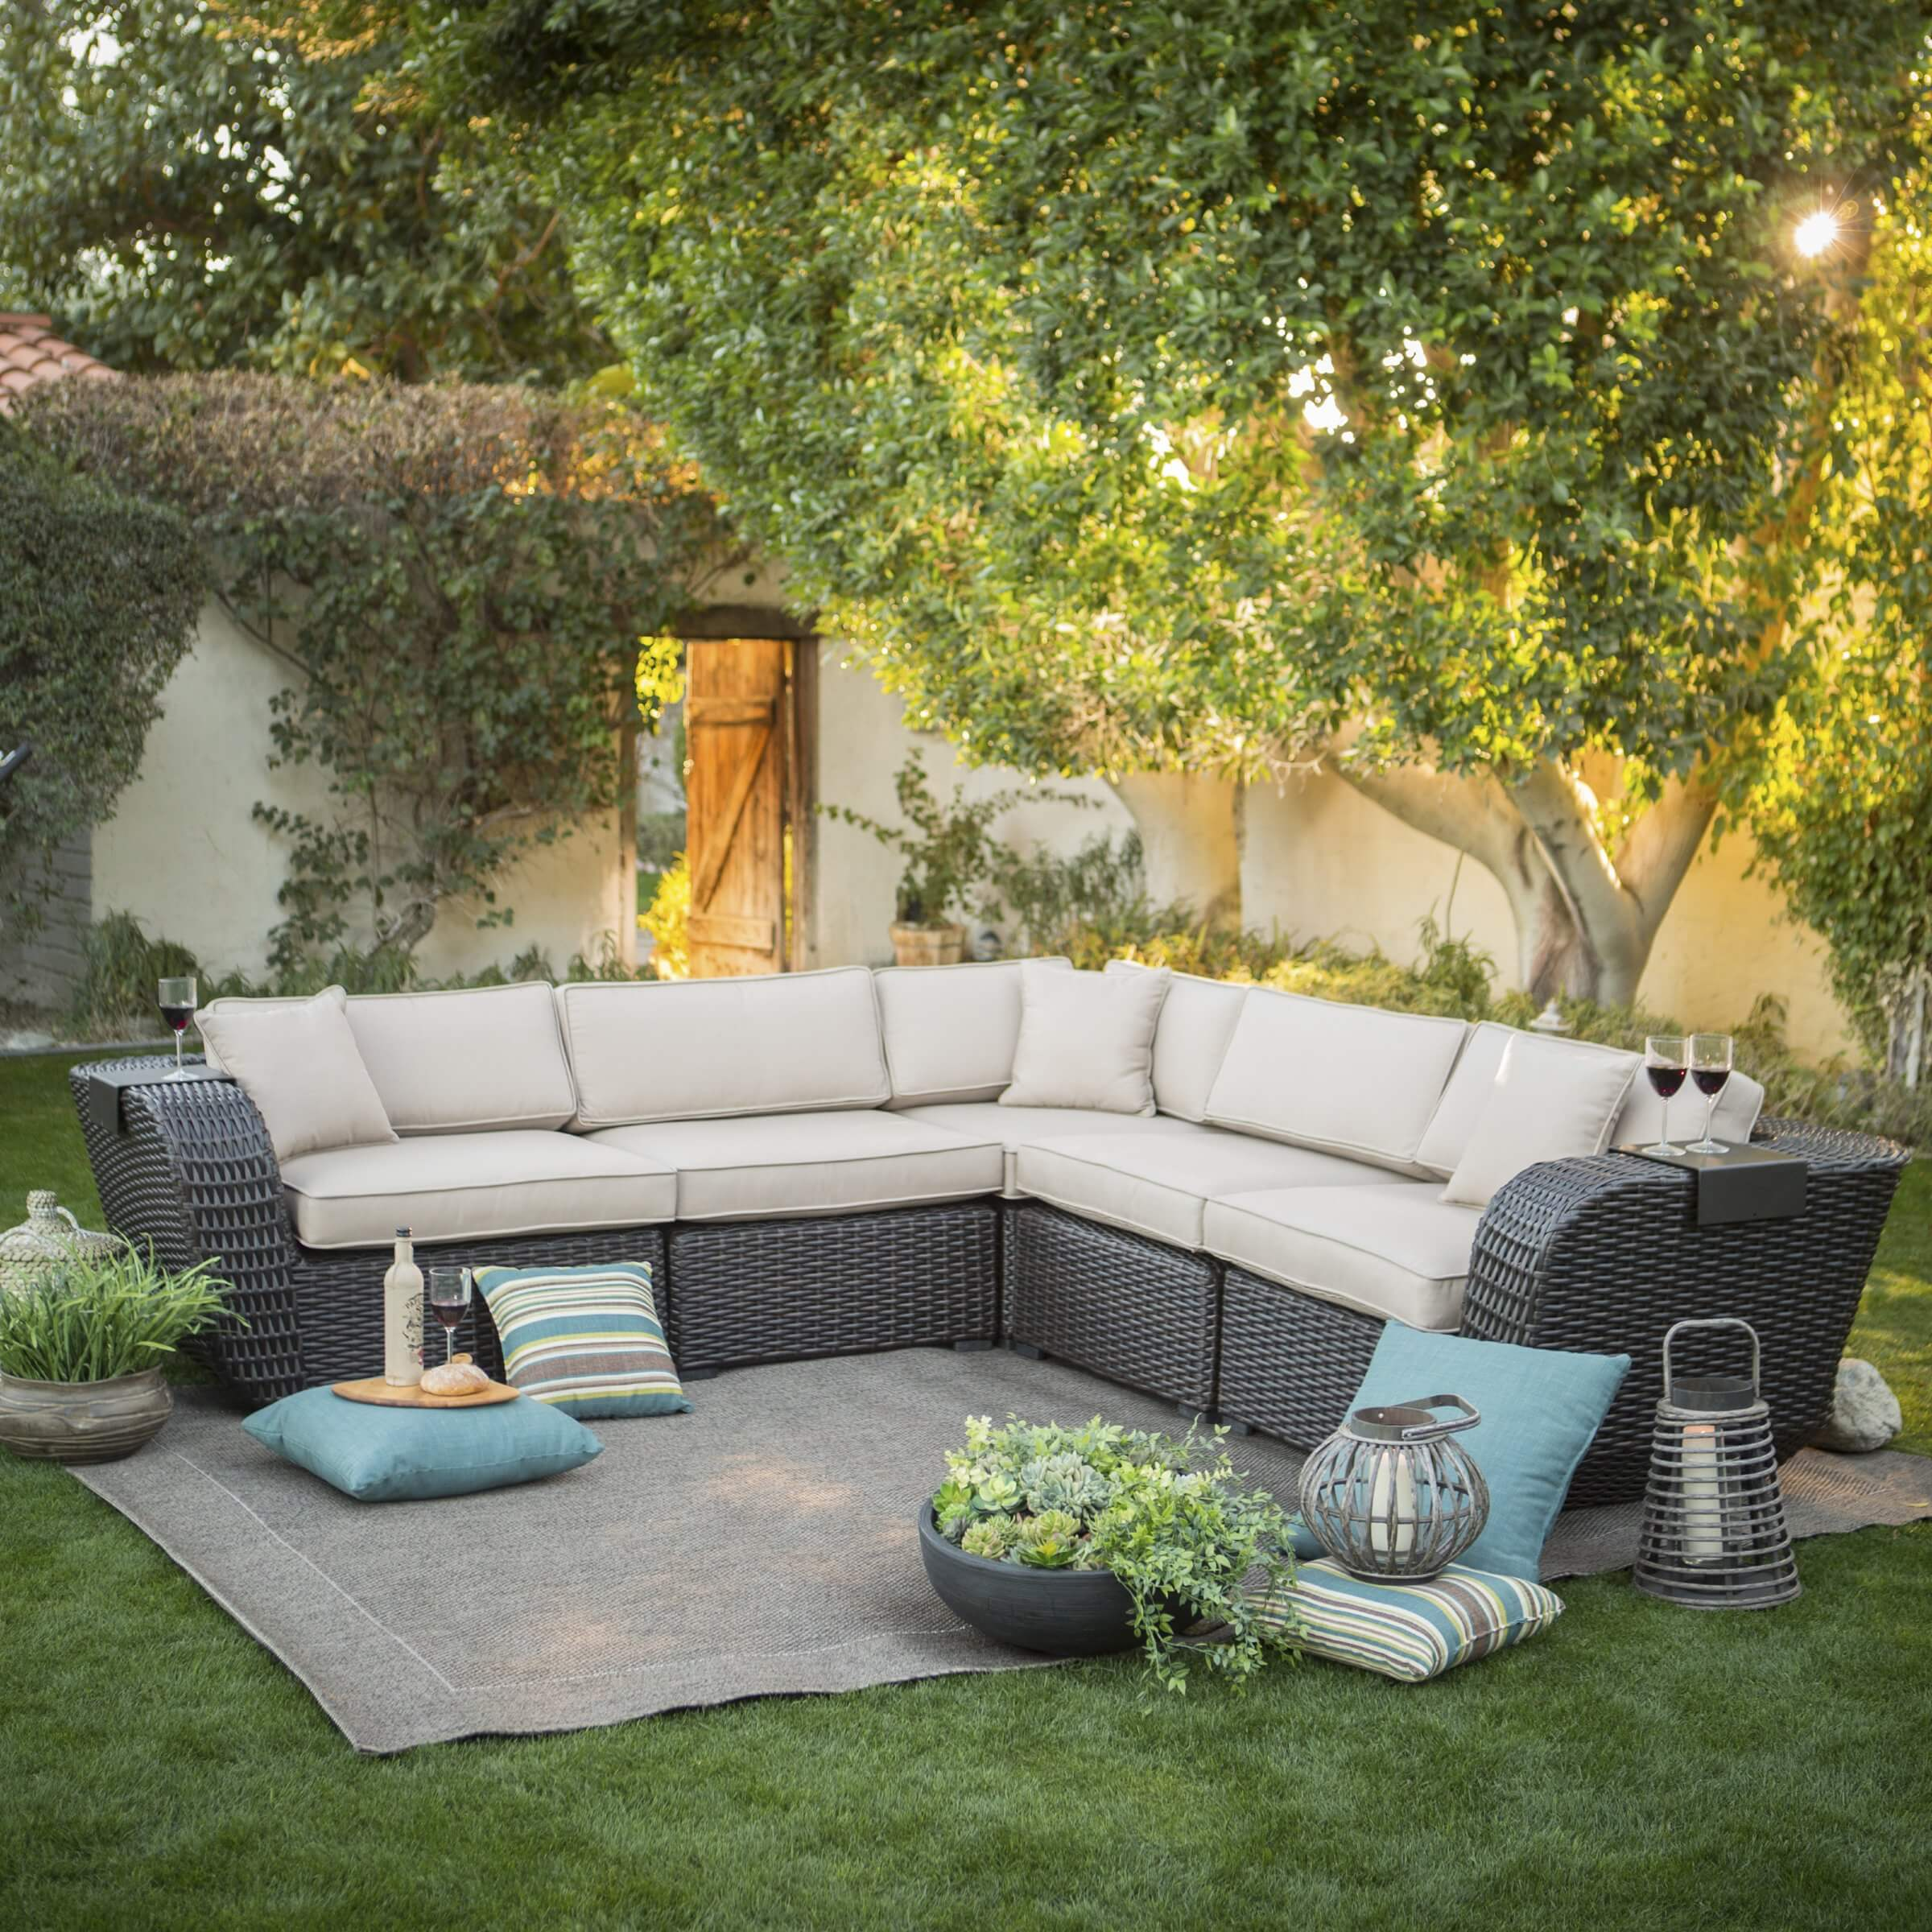 Large, plush L-shaped sectional features multiple detachable segments, thick resin wicker construction, an array of light toned cushioning, and small armrest attachments for drink surfaces.